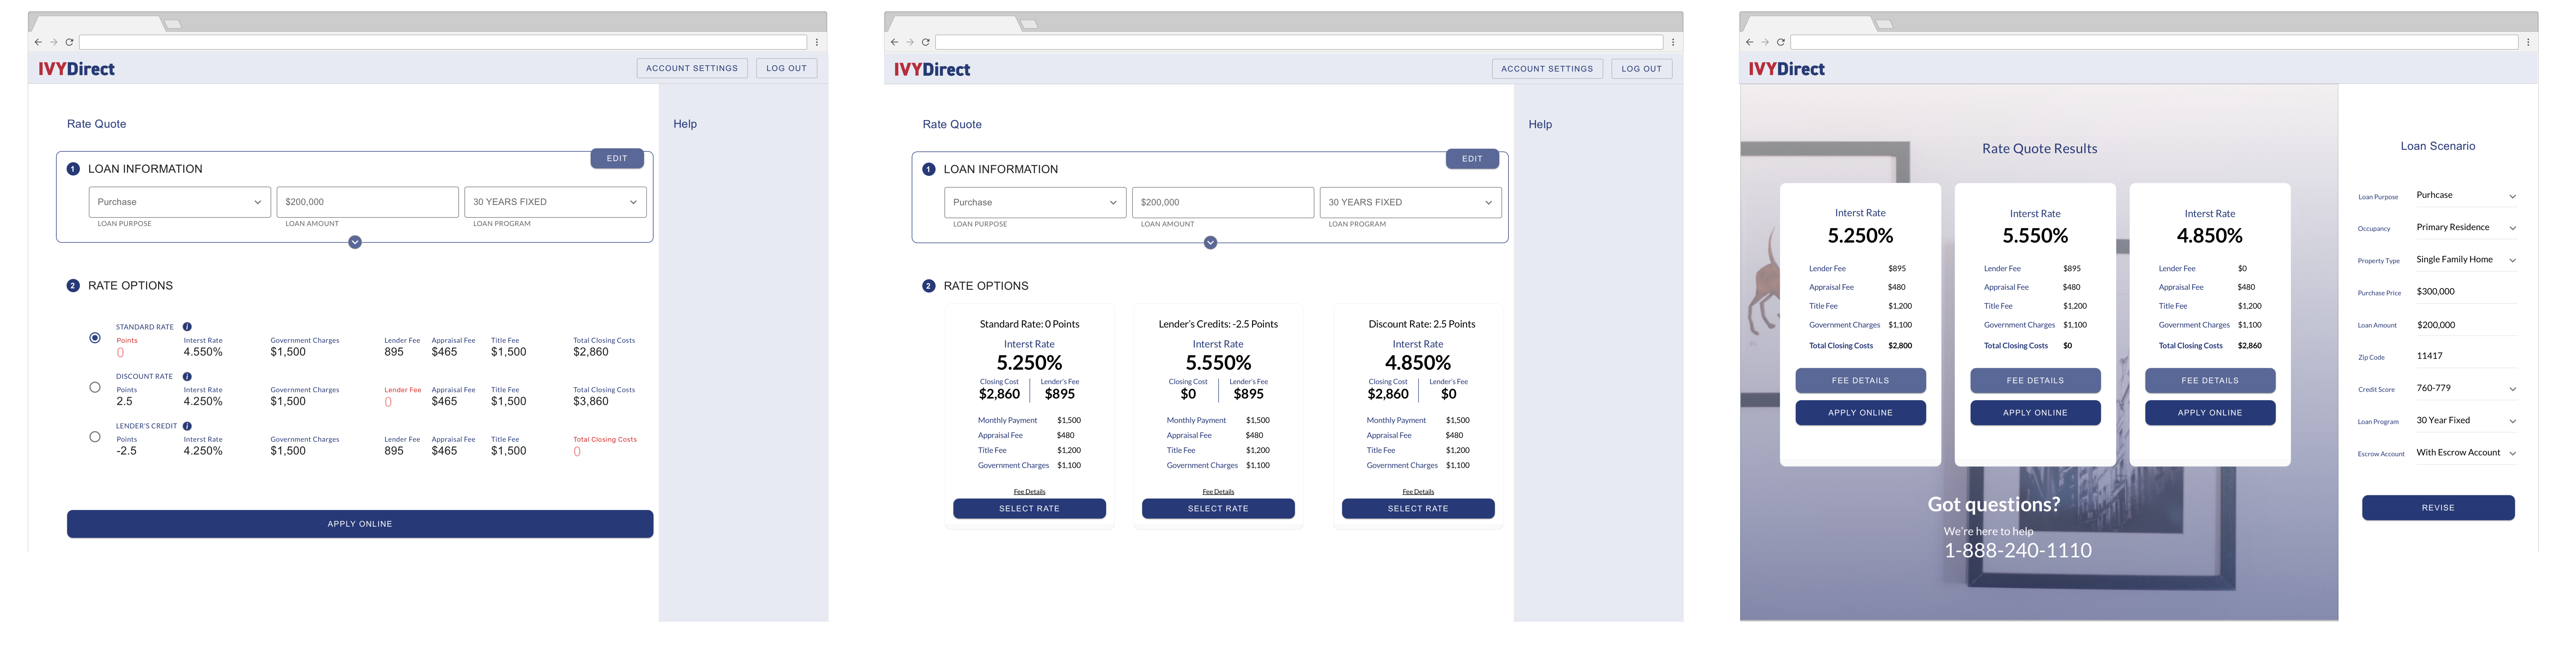 Visual Iterations of the Rate Quote Results page